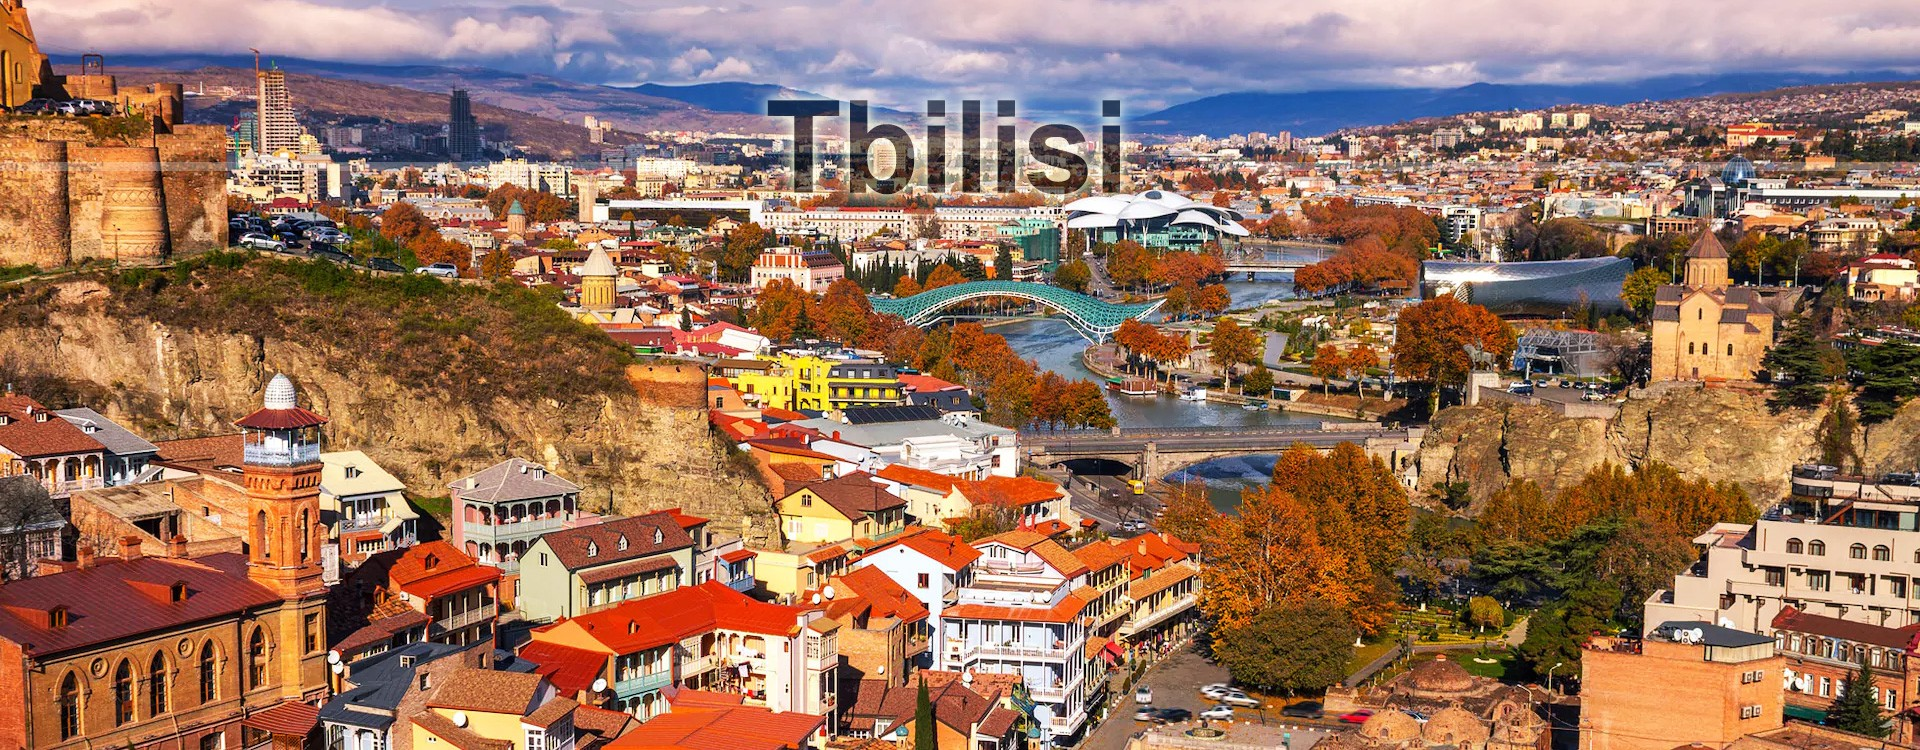 files-homePages-backtbilisi-97138e38909da6817d49c0087abd67e2.jpg